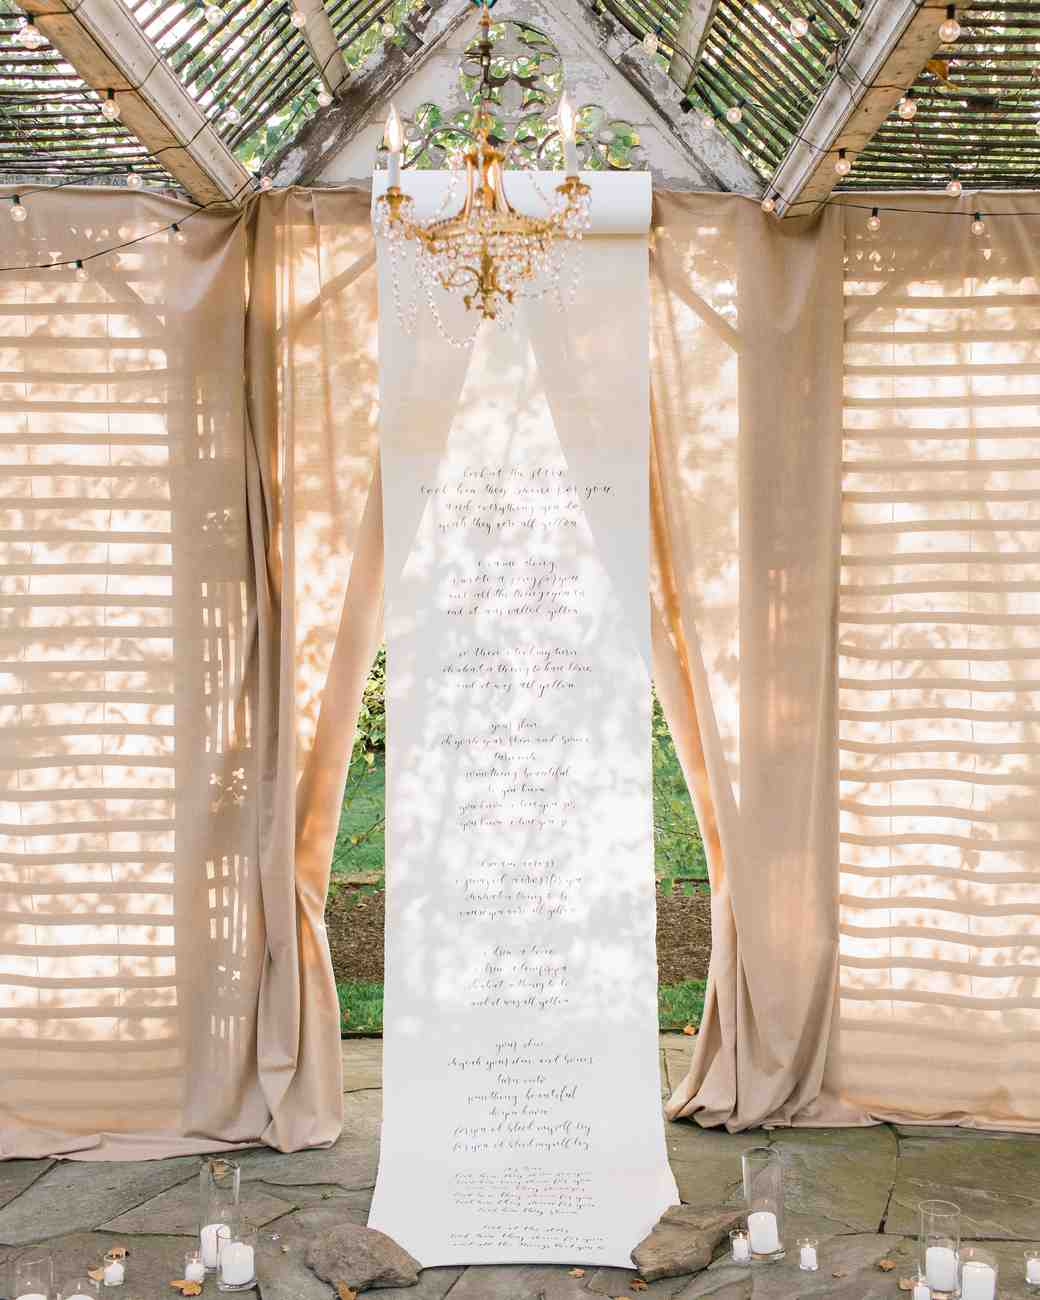 wedding ceremony backdrop hanging scroll candles rocks